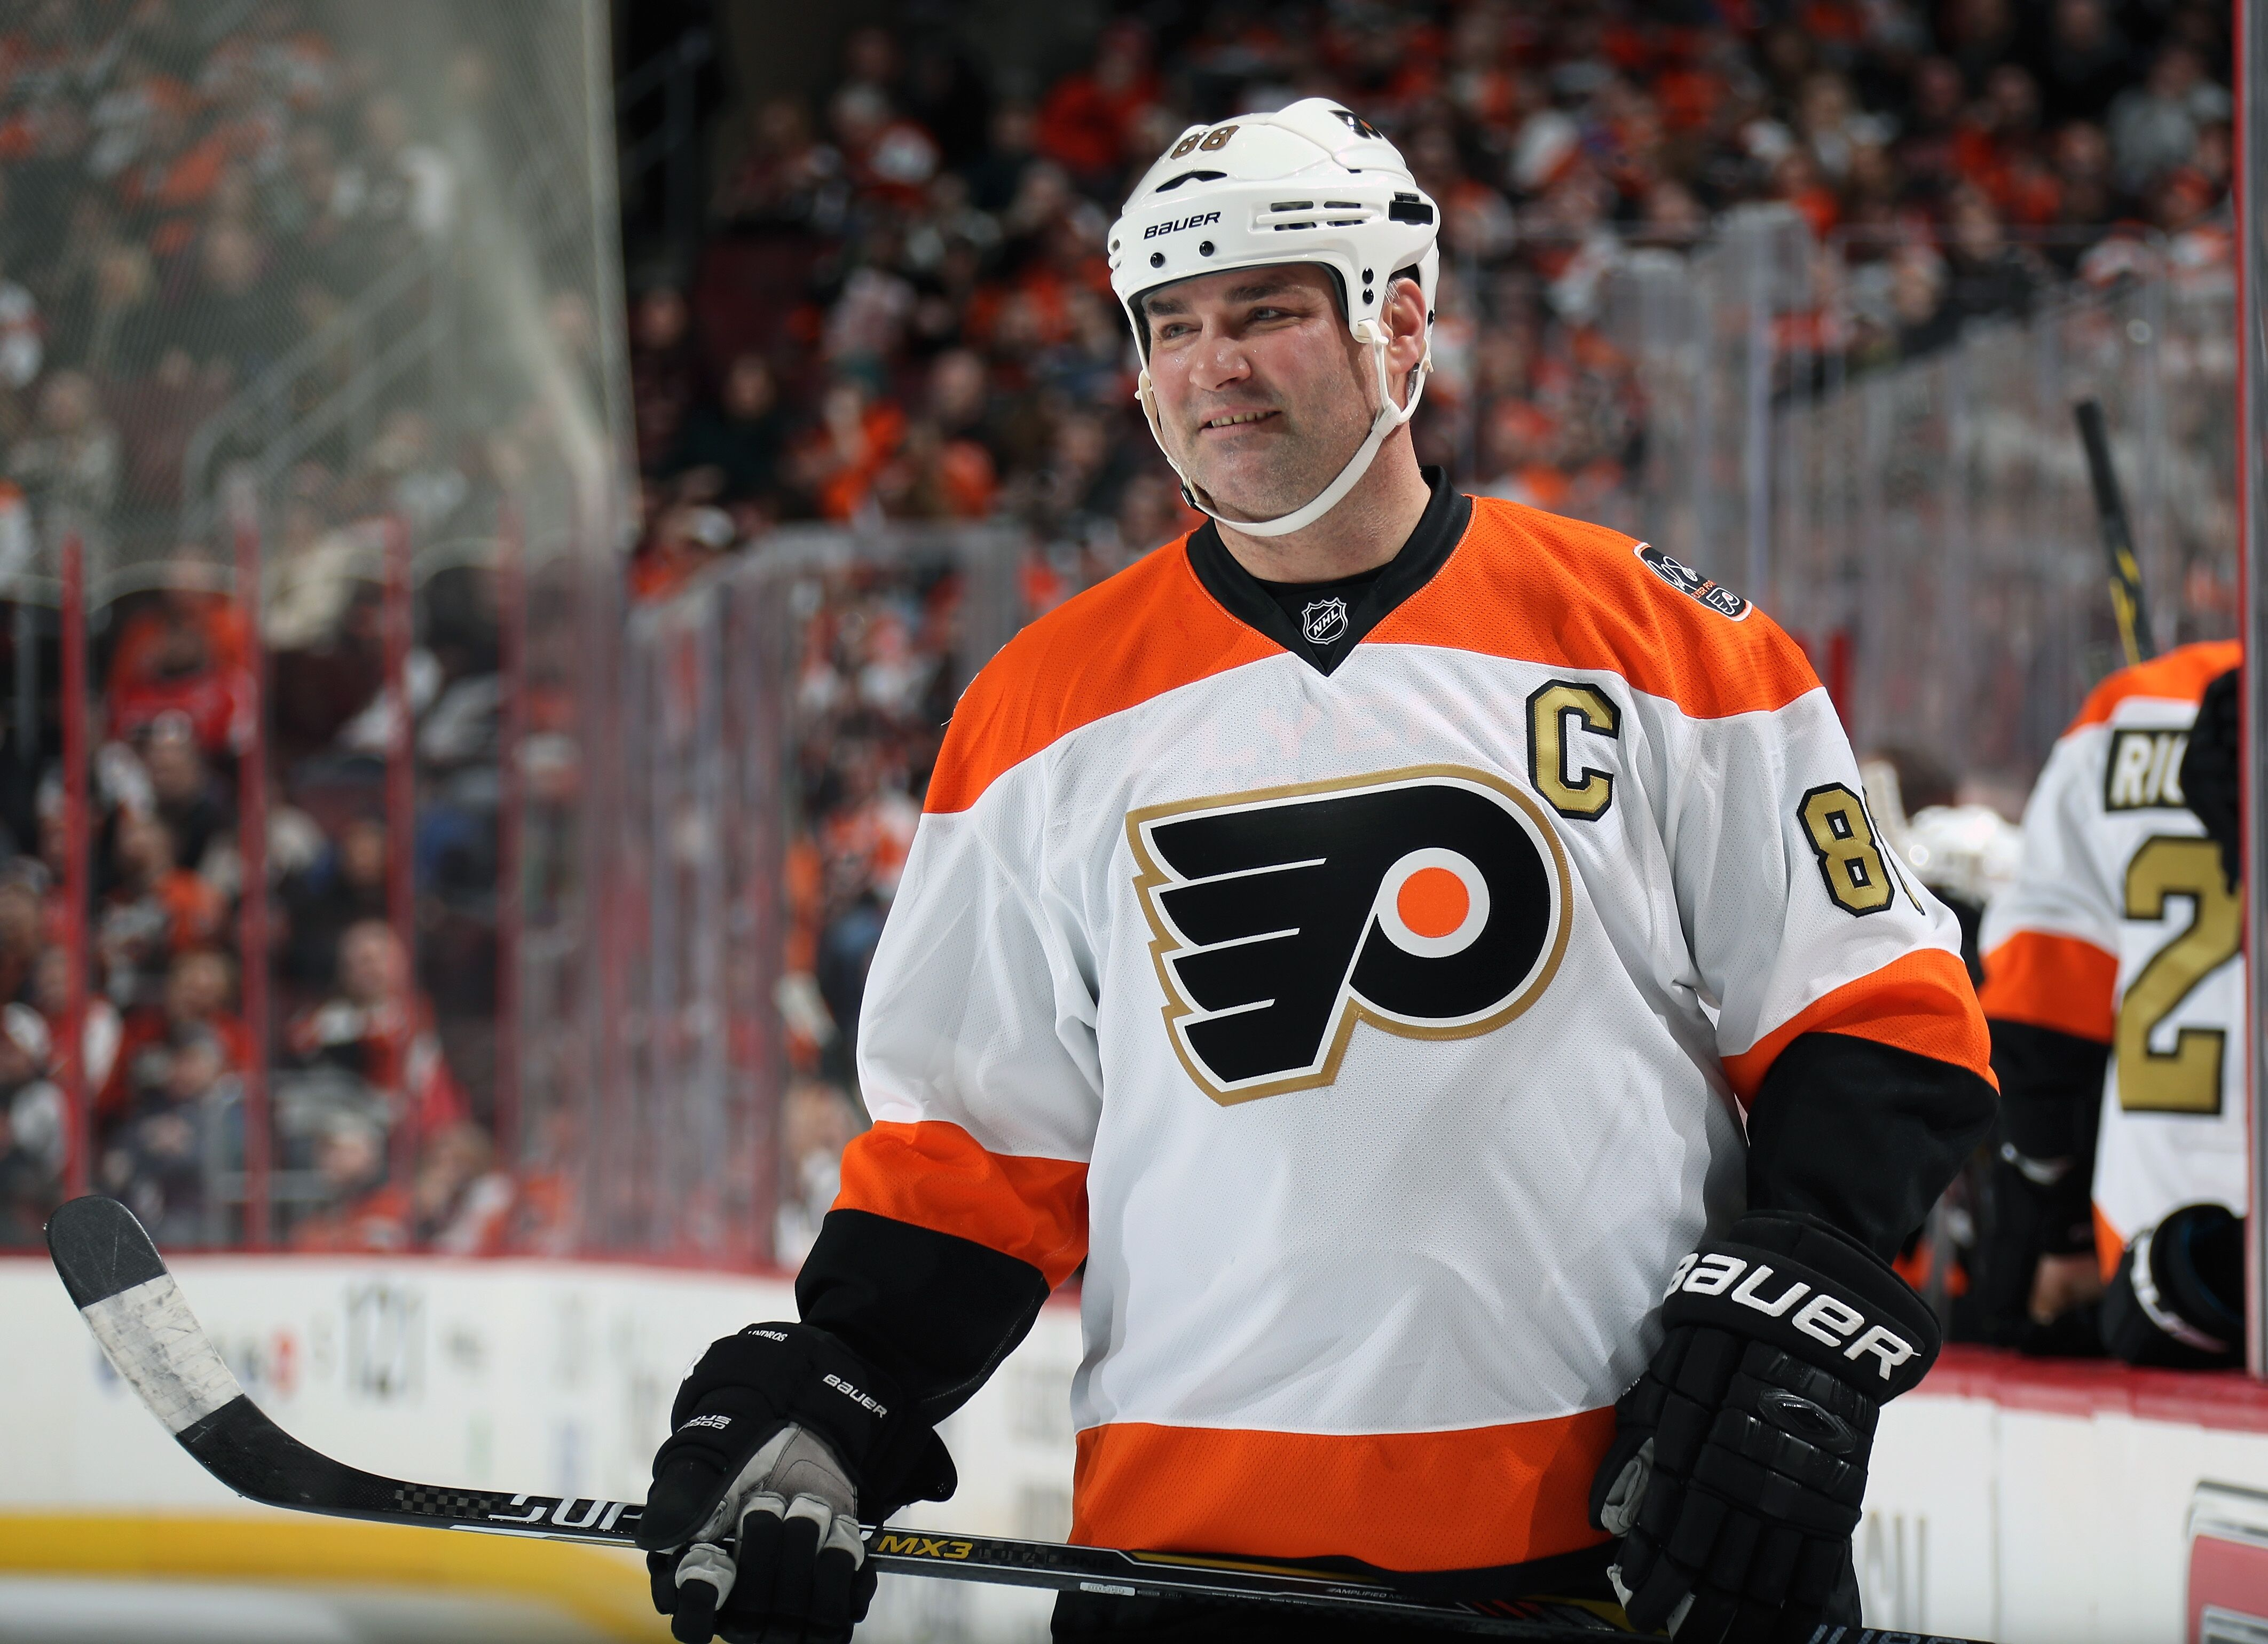 Philadelphia Flyers to retire No. 88 jersey worn by Eric Lindros b1f437698